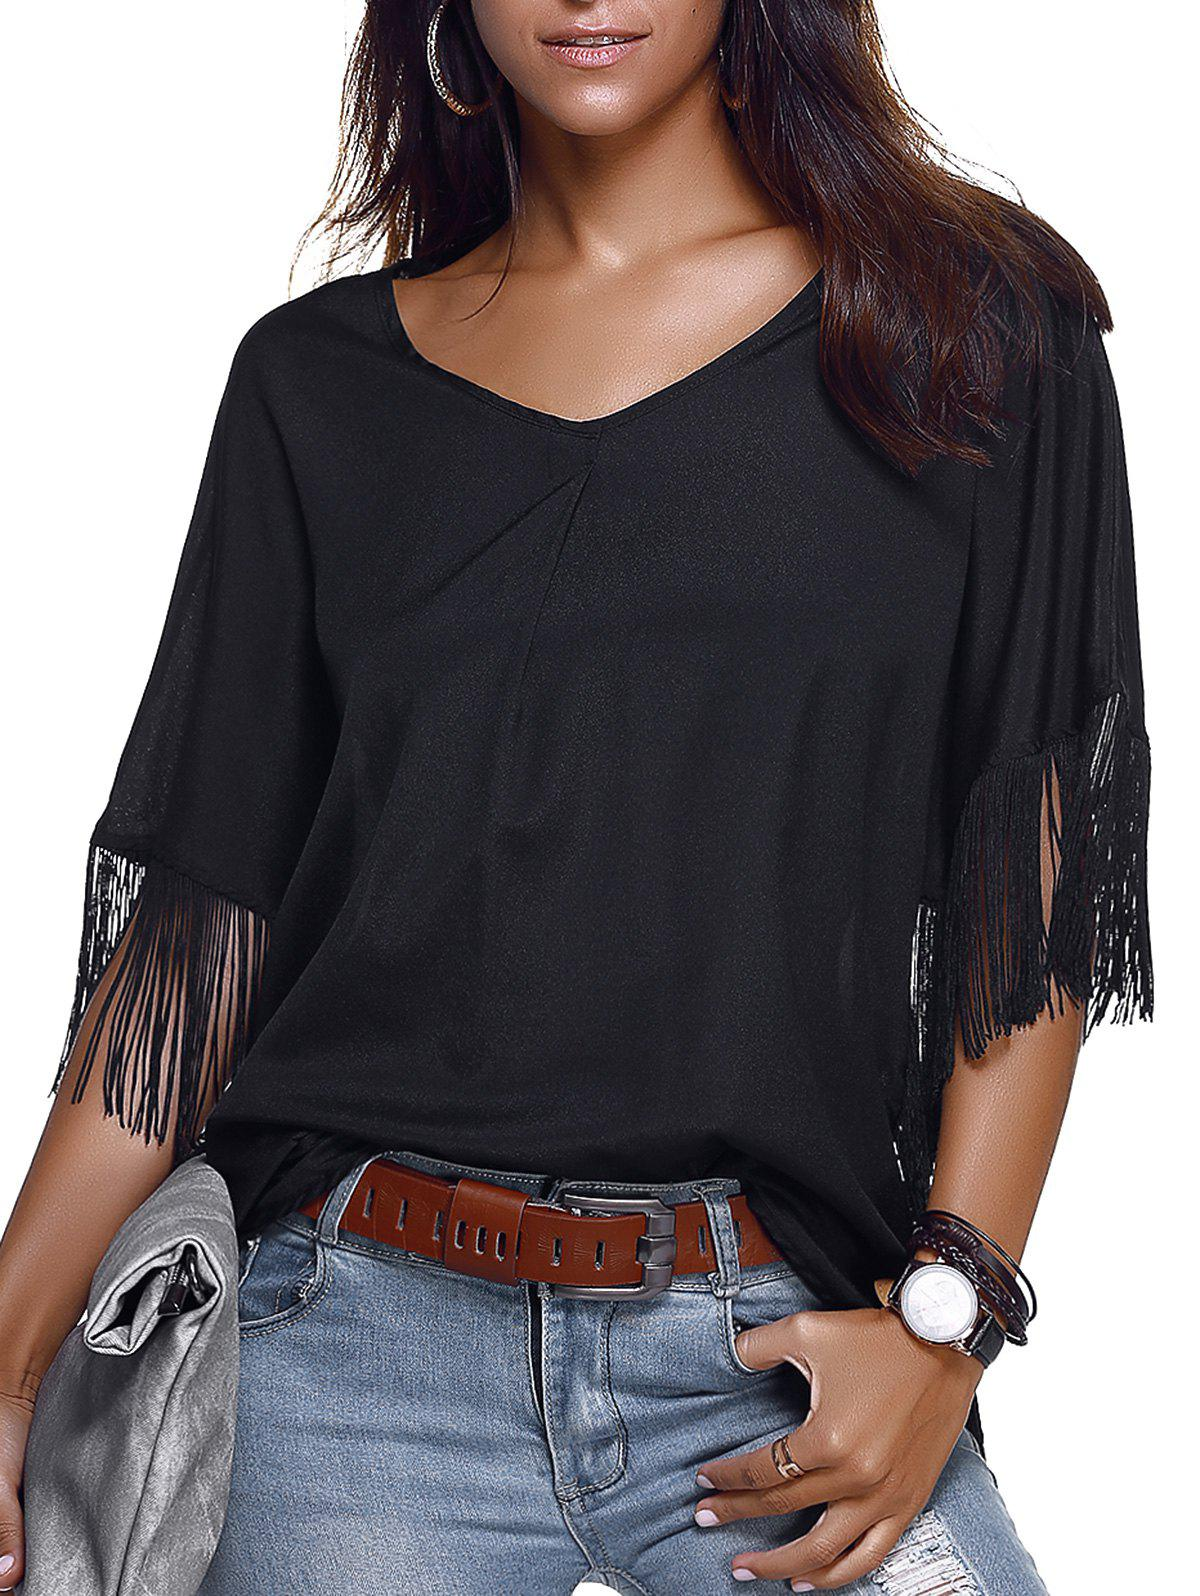 Trendy V-Neck Short Sleeve Fringe Design Blouse For Women - BLACK XL